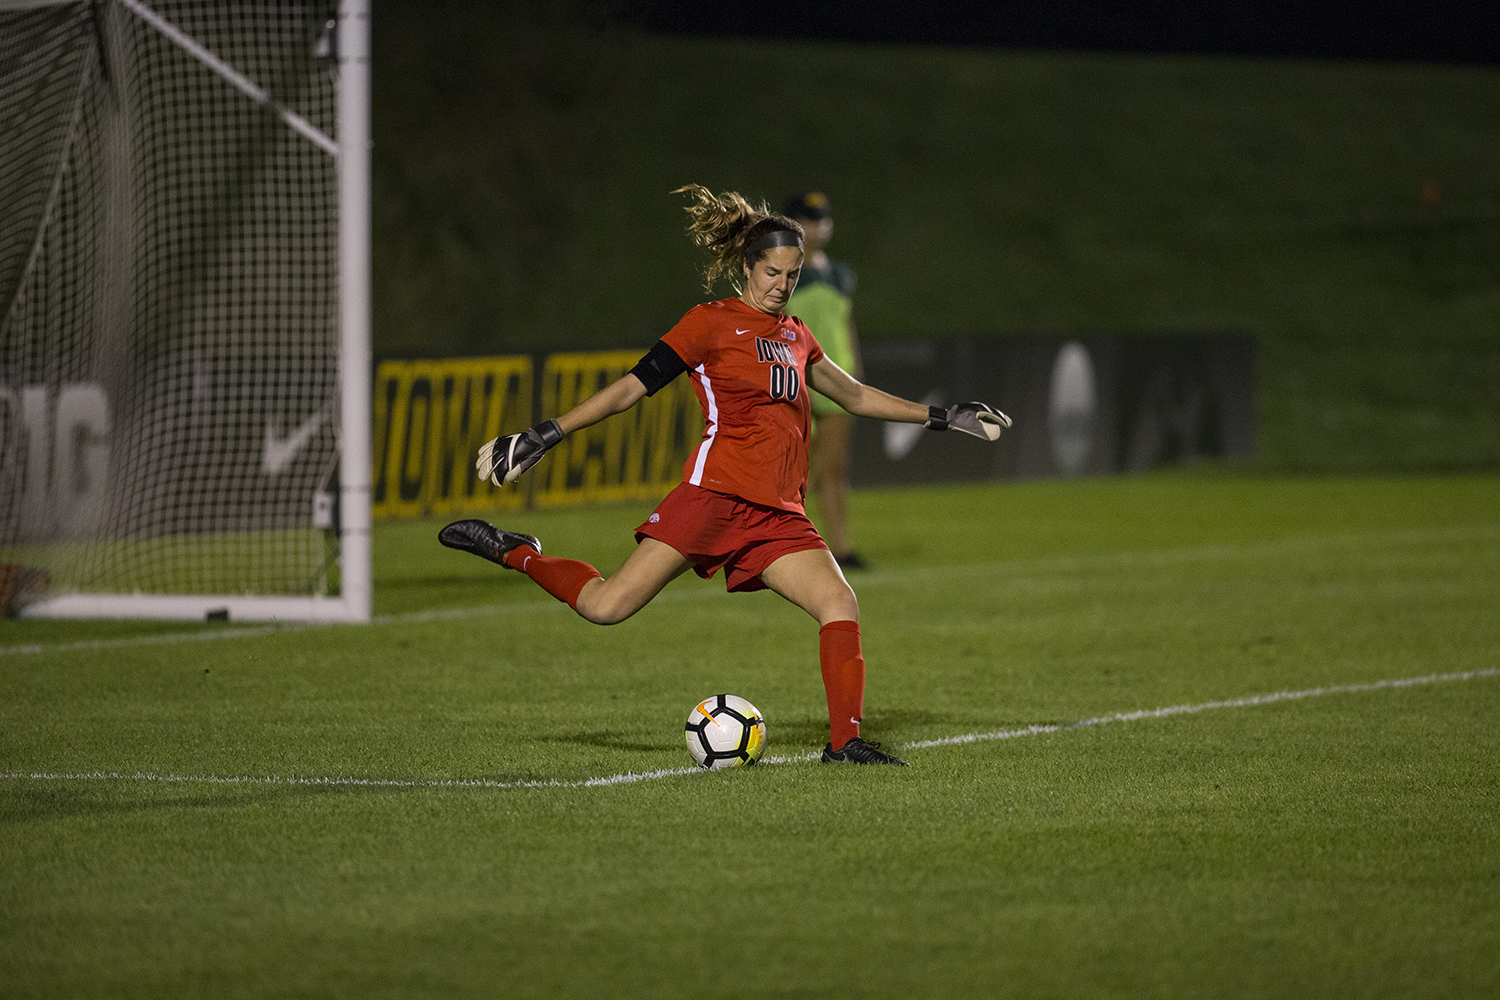 Sophomore Cora Meyer kicks the ball back in play during the Iowa vs. Purdue soccer game on Sept. 20, 2018 at the Iowa Soccer Complex in Iowa City. Iowa tied Purdue 1-1 in overtime.